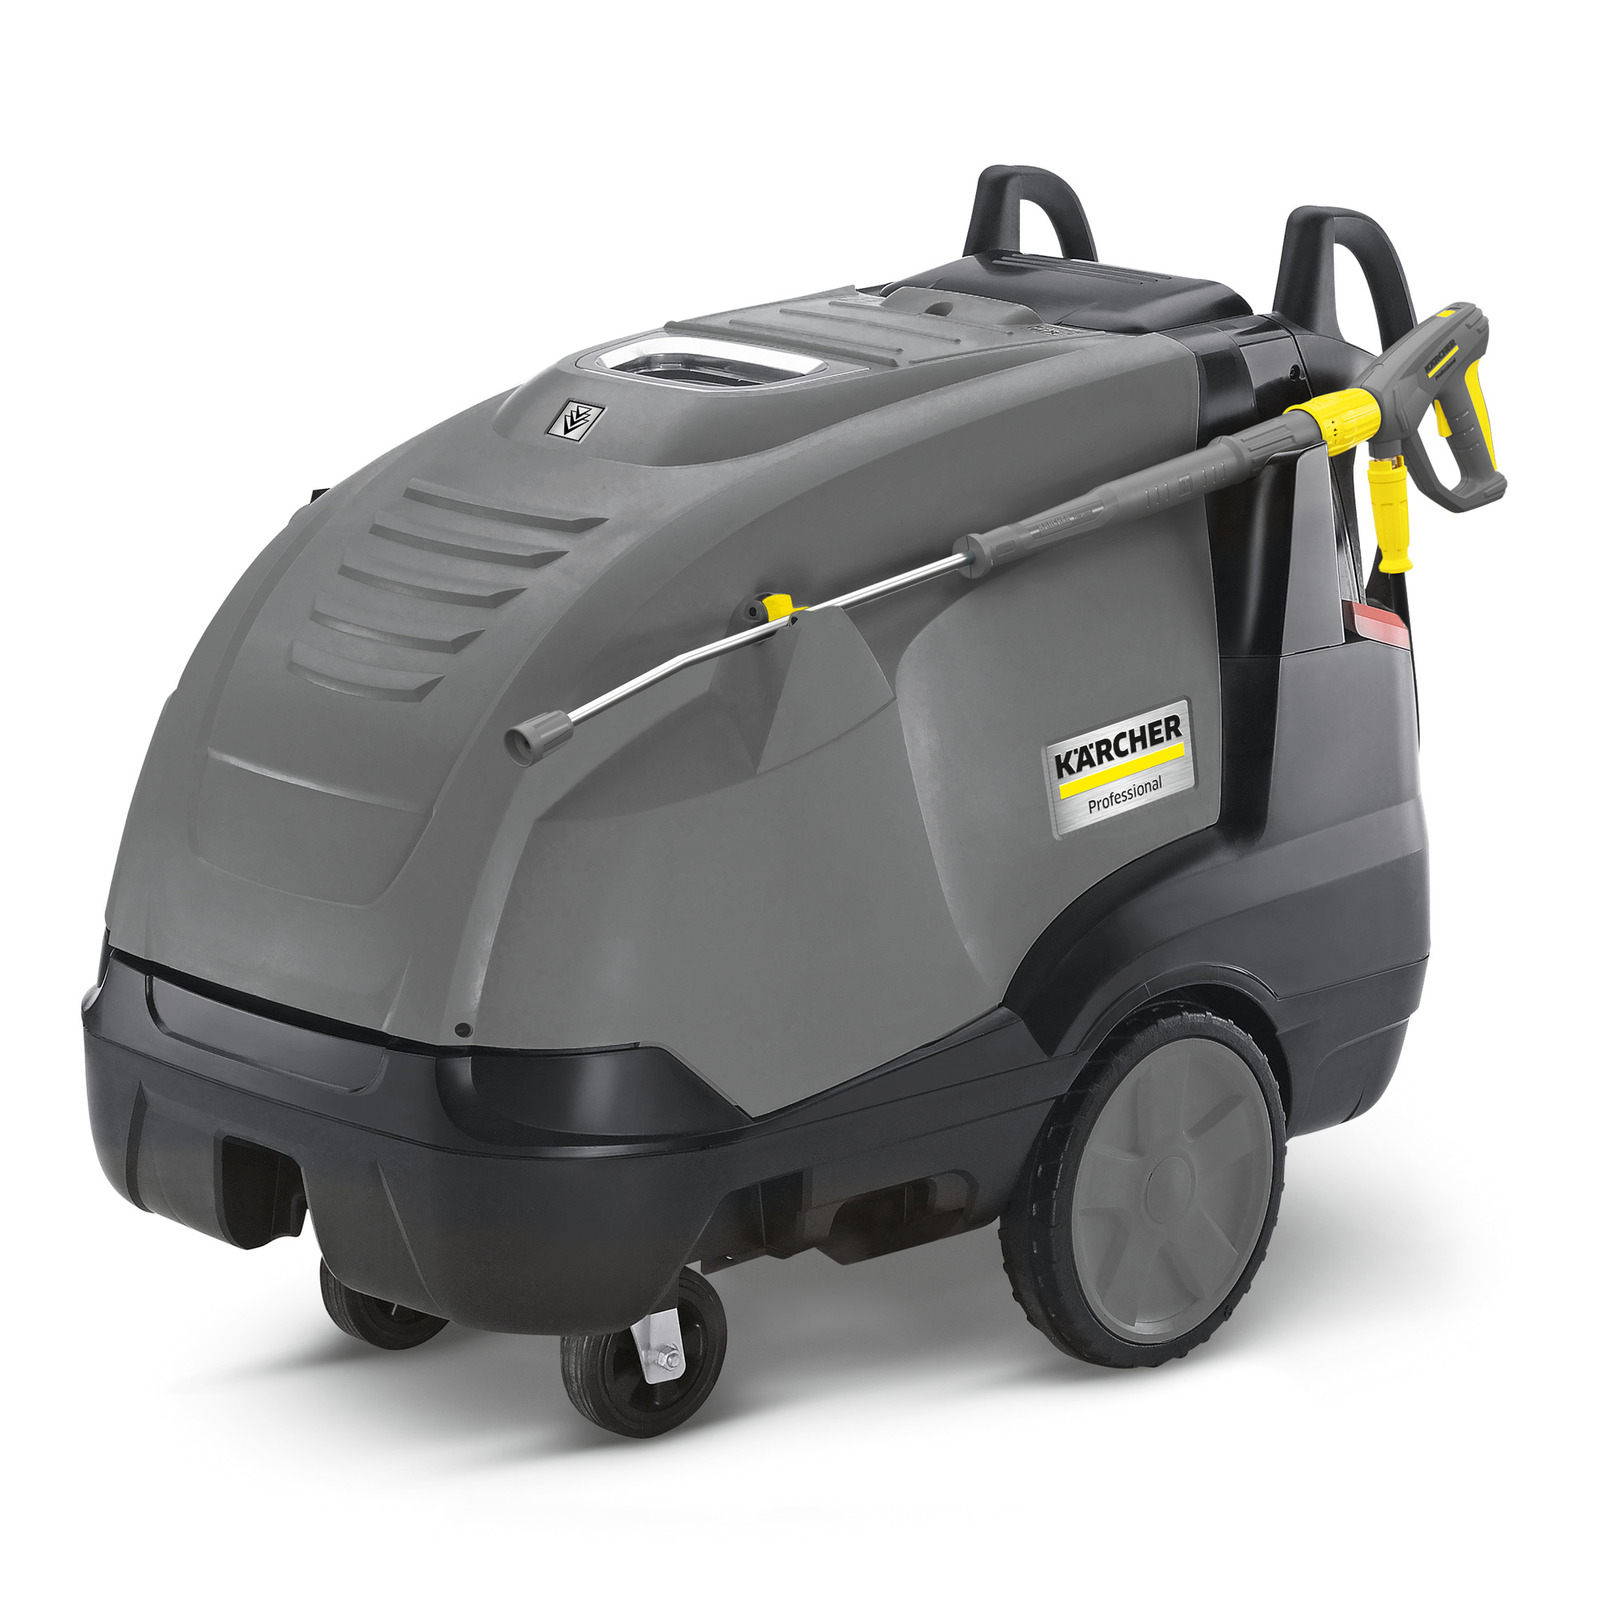 Hot Water High Pressure Cleaners Hds 12 18 4s Easy